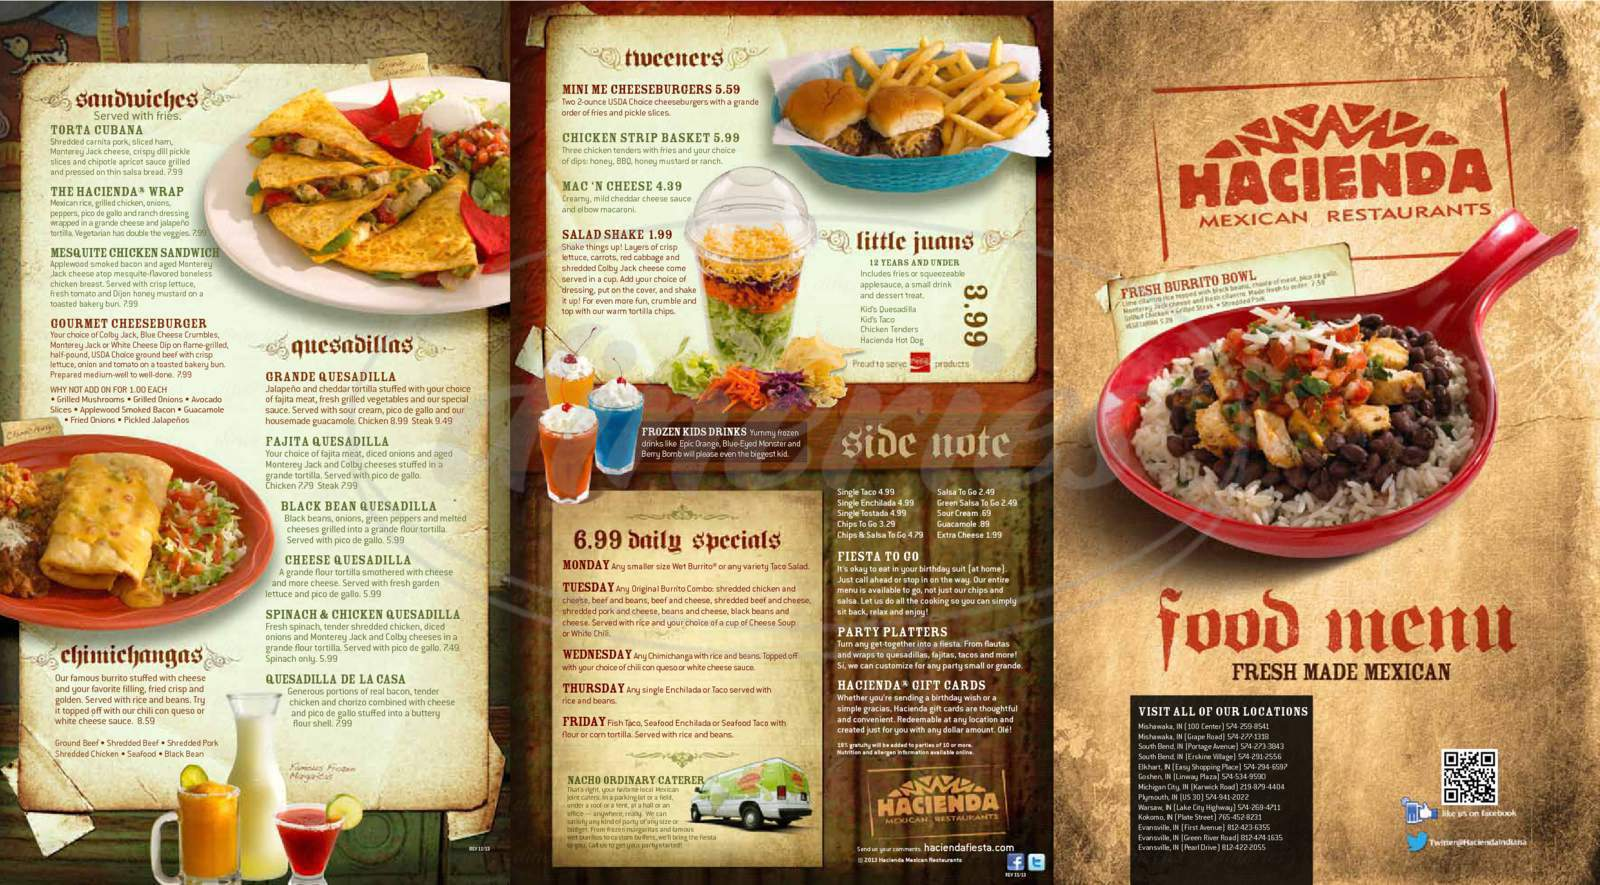 menu for Hacienda Mexican Restaurant